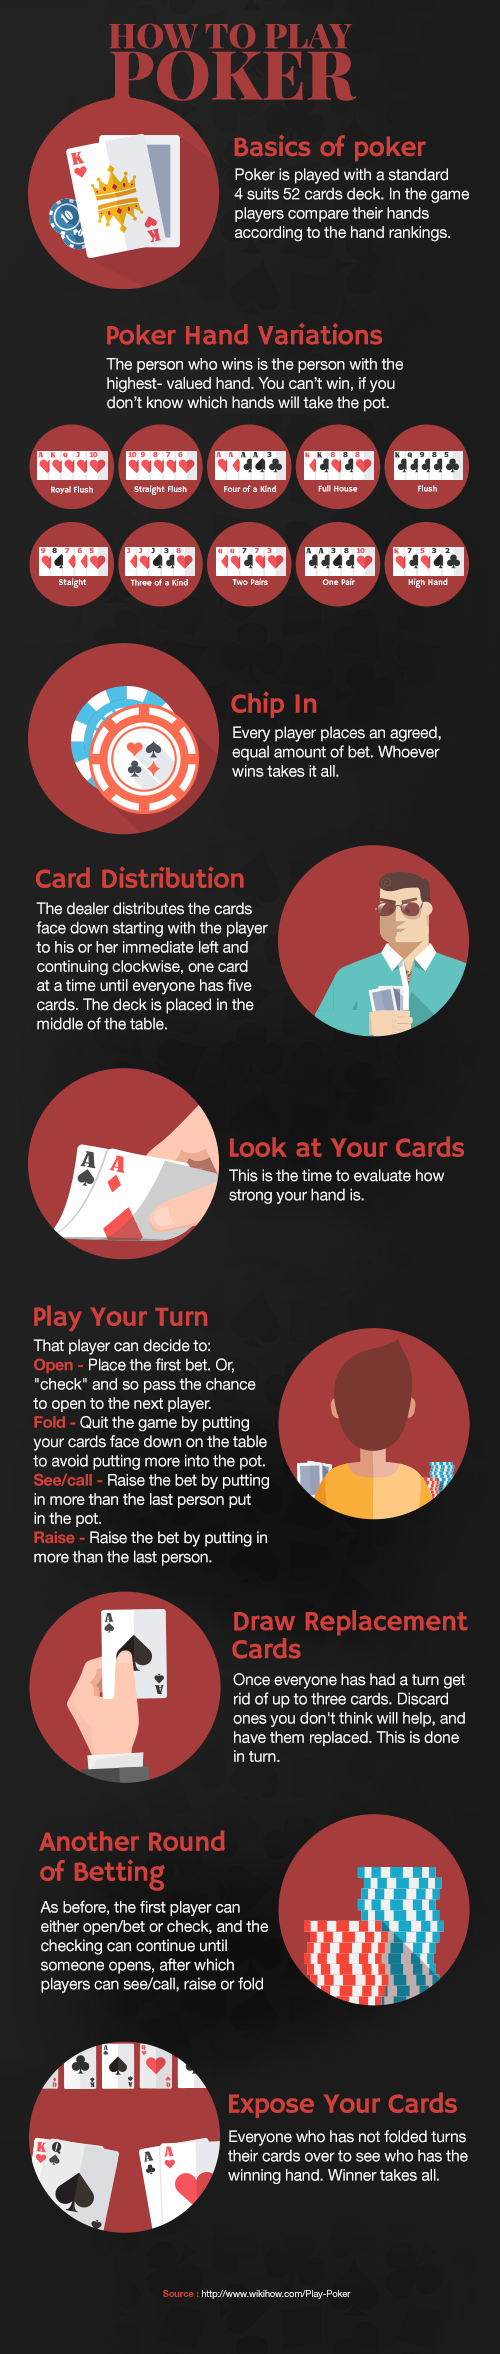 How To Play Poker #Infographic